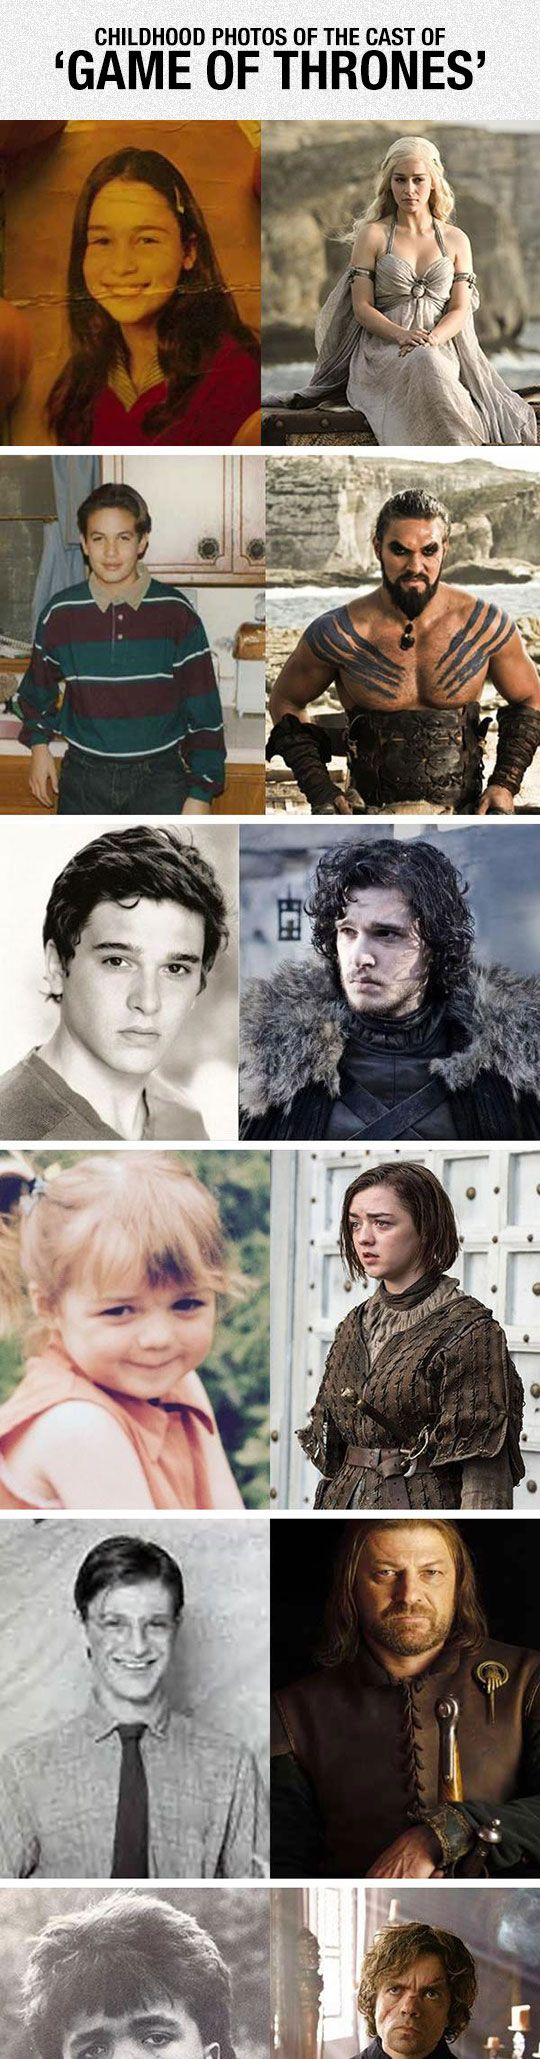 The Cast Of Game Of Thrones: